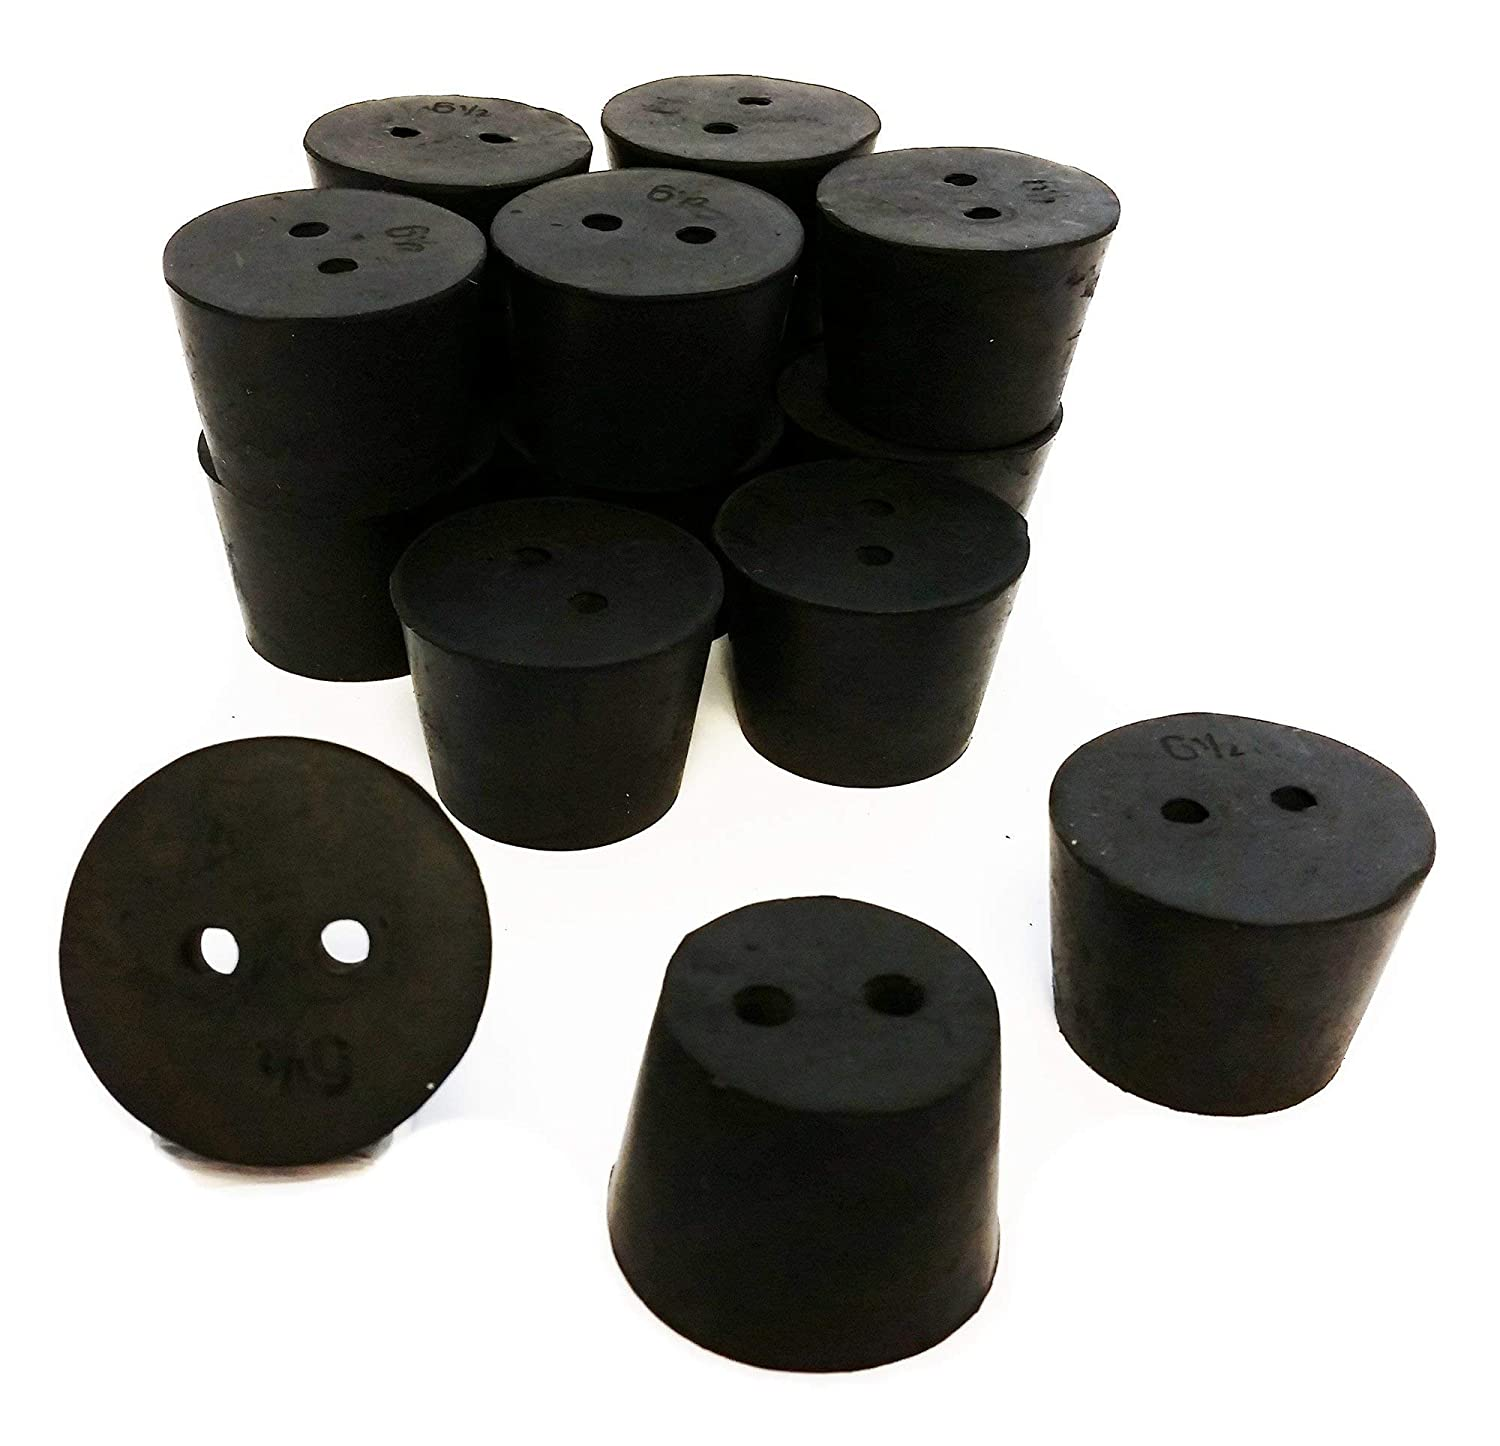 GSC International RS-6.5-2 Rubber Stoppers, Size 6.5, Drilled 2-Holes (1-Pound Pack)